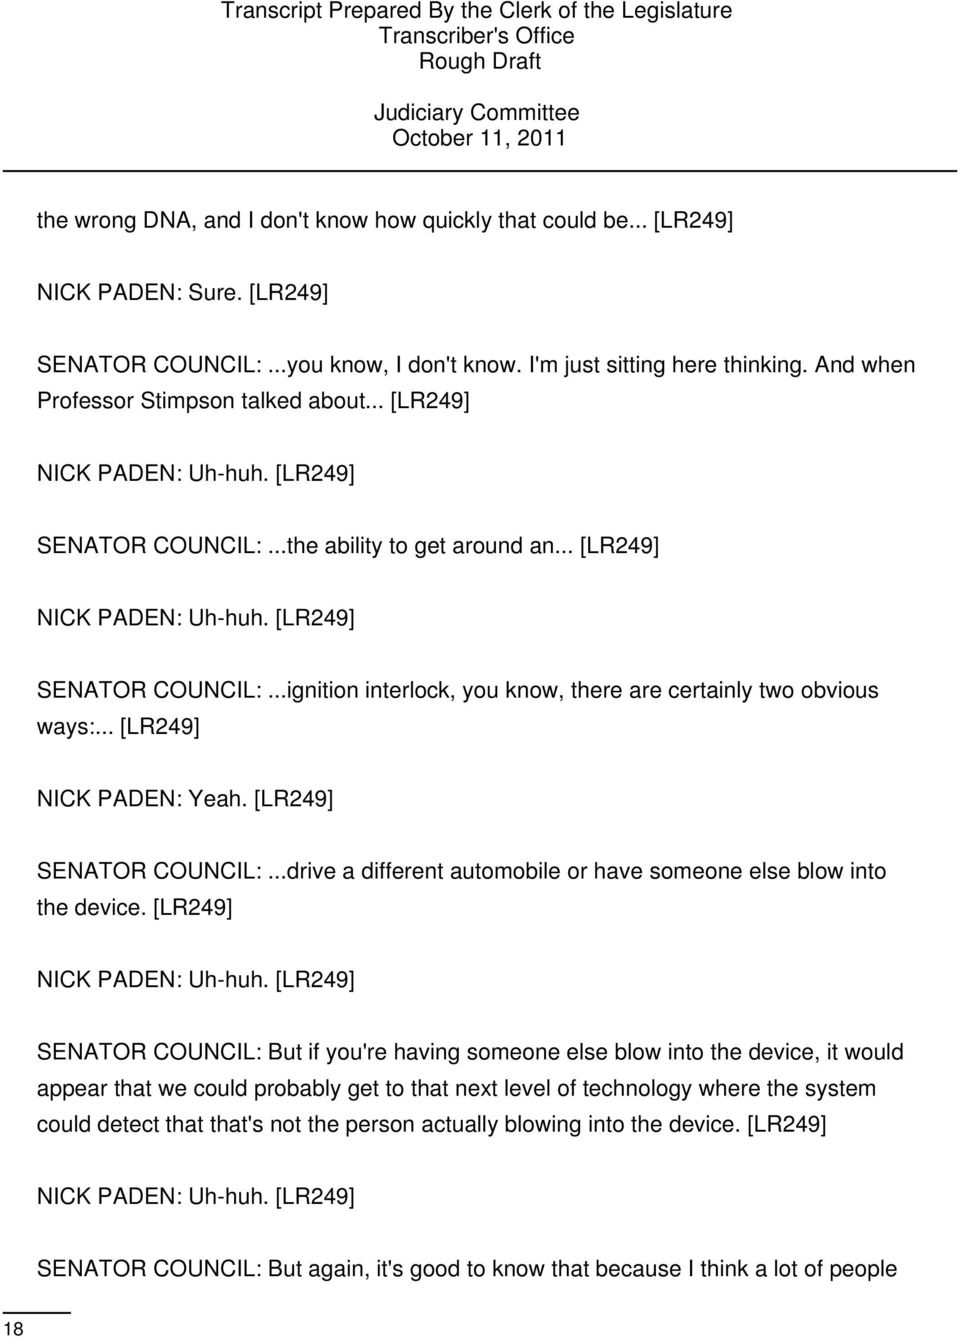 .. [LR249] NICK PADEN: Yeah. [LR249] SENATOR COUNCIL:...drive a different automobile or have someone else blow into the device. [LR249] NICK PADEN: Uh-huh.